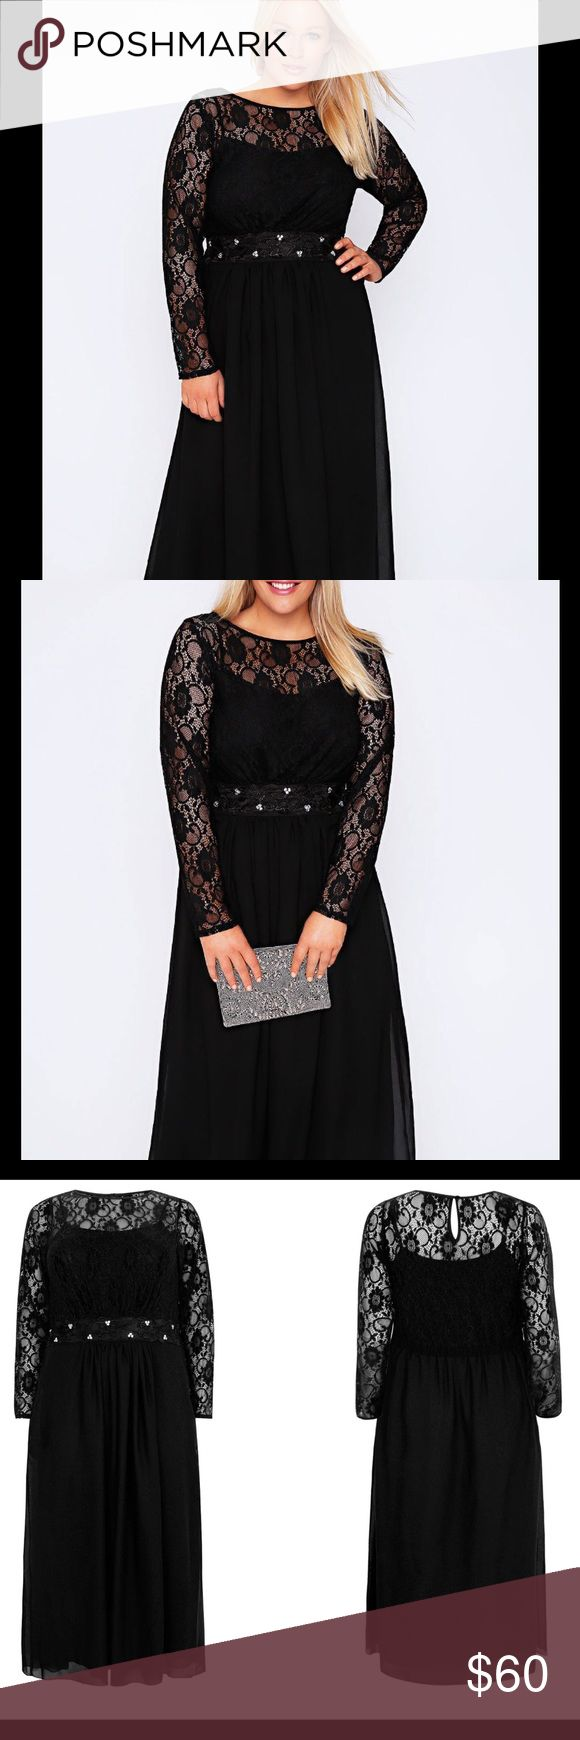 """Black Lace Embellished Maxi Dress Plus Size Upper: 90% Nylon, 10% Elastane, Skirt: 100% Polyester Length from (approx): 150cm/59"""" Plus Sizes: 30 Machine Washable (Model is 5'10"""" and size 16) Plus size black long sleeved maxi dress with floral overlay to the top and silver bead embellishment to the waist. Has a scoop neckline with a keyhole button fastened detail to the back and a jersey underlayer to the chiffon skirt. This elegant dress can be worn with heels and statement jewellery for any…"""